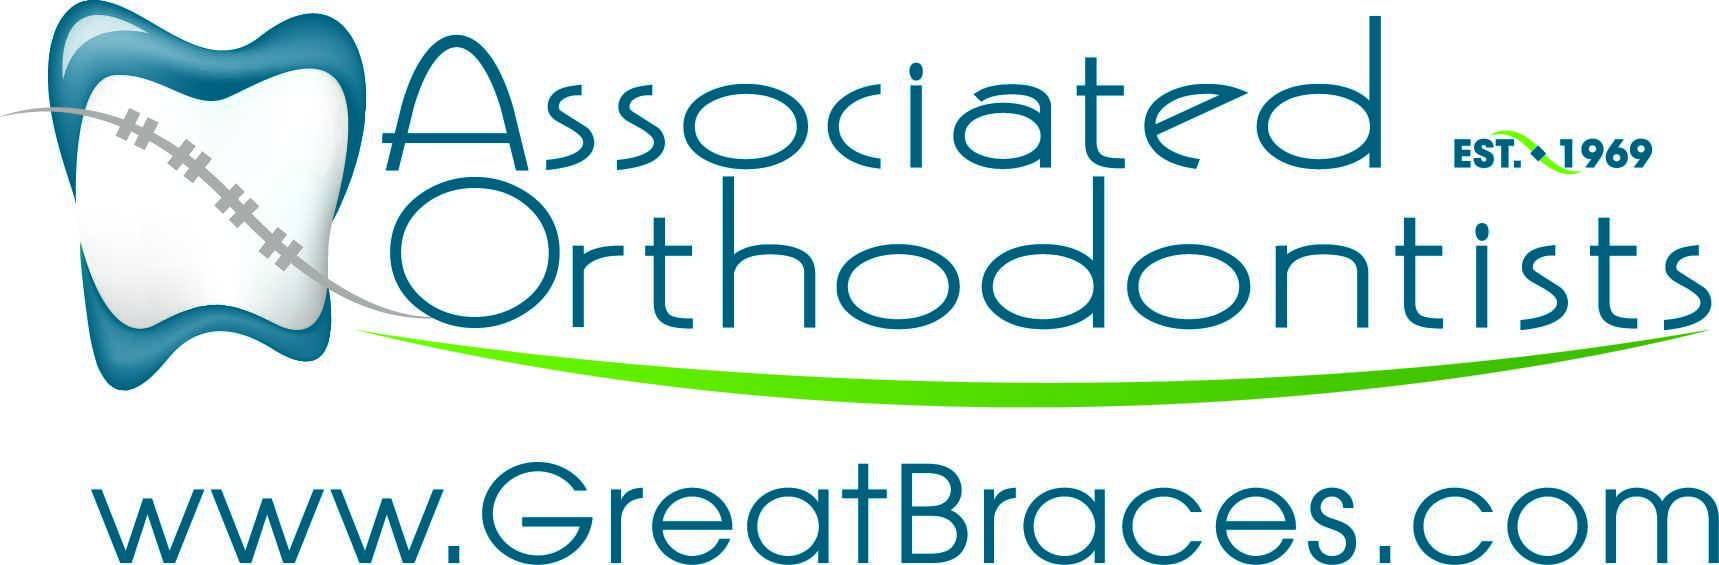 Associated Orthodontists